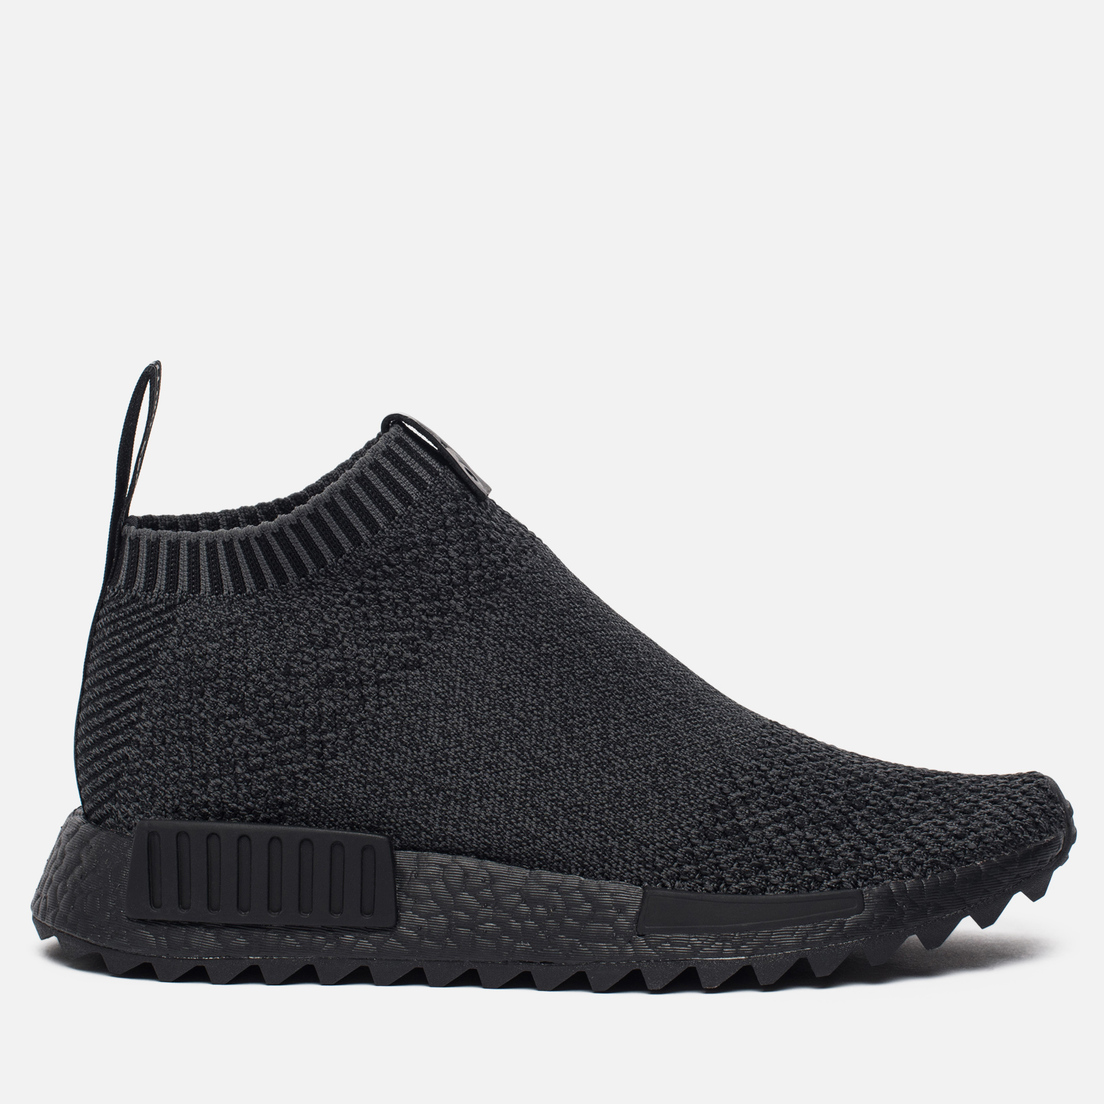 The Good Will Out NMD City Sock